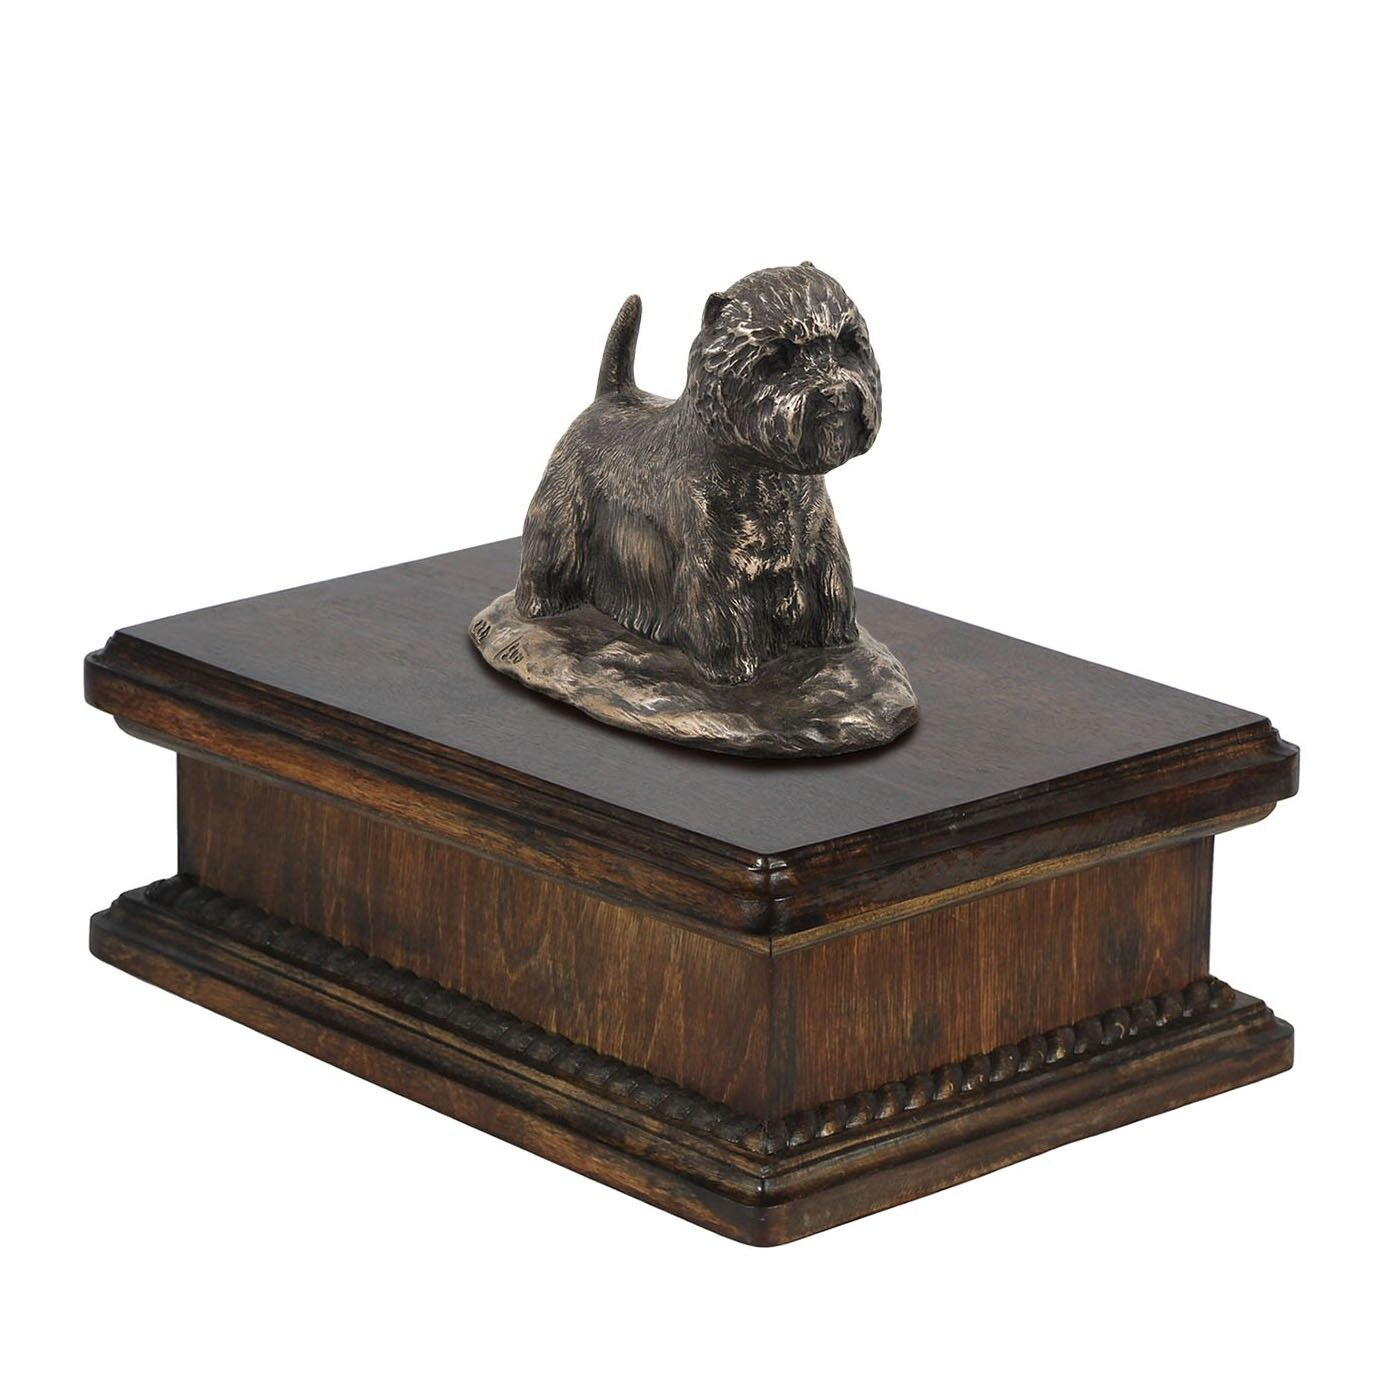 West Highland White Terrier  exclusive urn with dog statue, High Quality,ArtDog